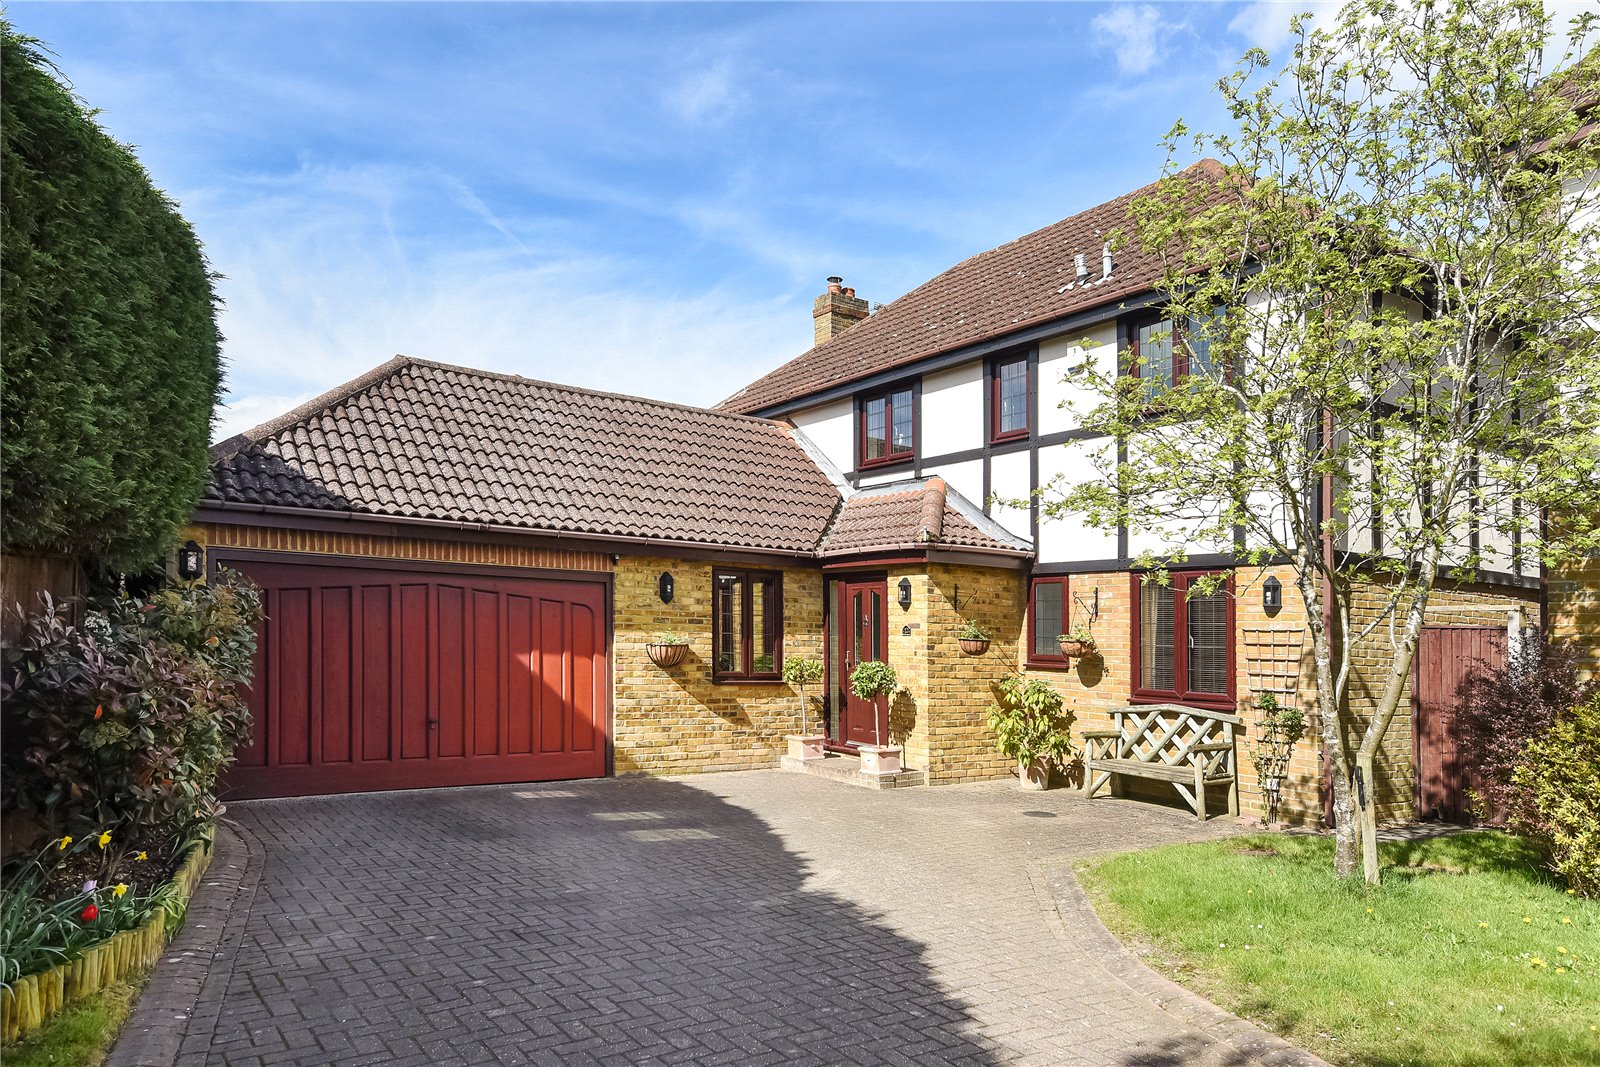 4 Bedrooms Detached House for sale in Fernbank, Finchampstead, Wokingham, Berkshire, RG40